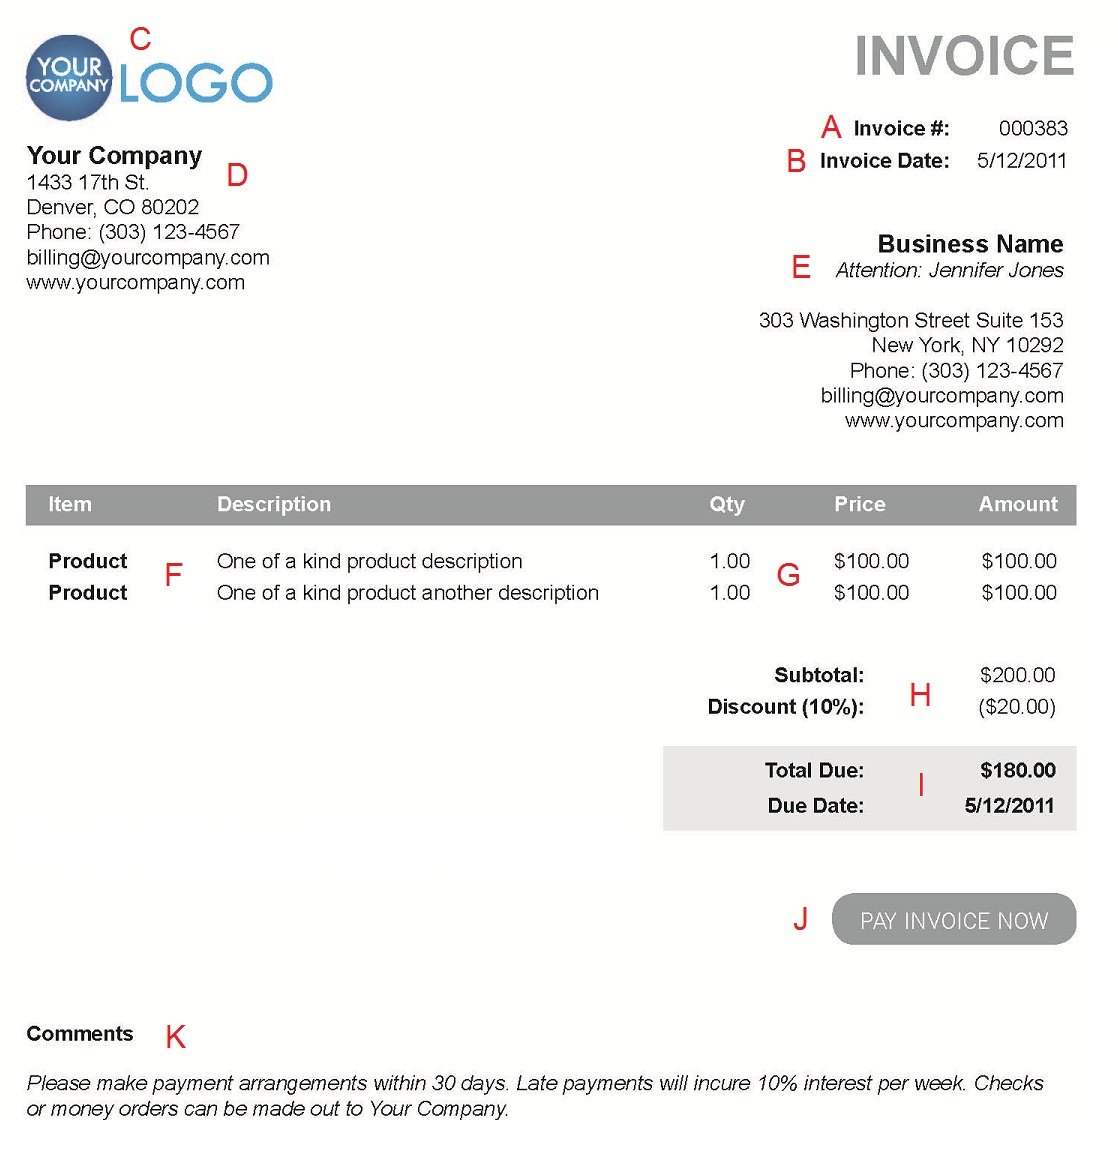 Coolmathgamesus  Gorgeous The  Different Sections Of An Electronic Payment Invoice With Likable A  With Easy On The Eye Best Way To Organize Receipts Also Texas Gross Receipts Tax In Addition Fake Taxi Receipt And Hand Written Receipt As Well As Request Read Receipt Outlook Additionally Whitney Houston Receipts From Paysimplecom With Coolmathgamesus  Likable The  Different Sections Of An Electronic Payment Invoice With Easy On The Eye A  And Gorgeous Best Way To Organize Receipts Also Texas Gross Receipts Tax In Addition Fake Taxi Receipt From Paysimplecom